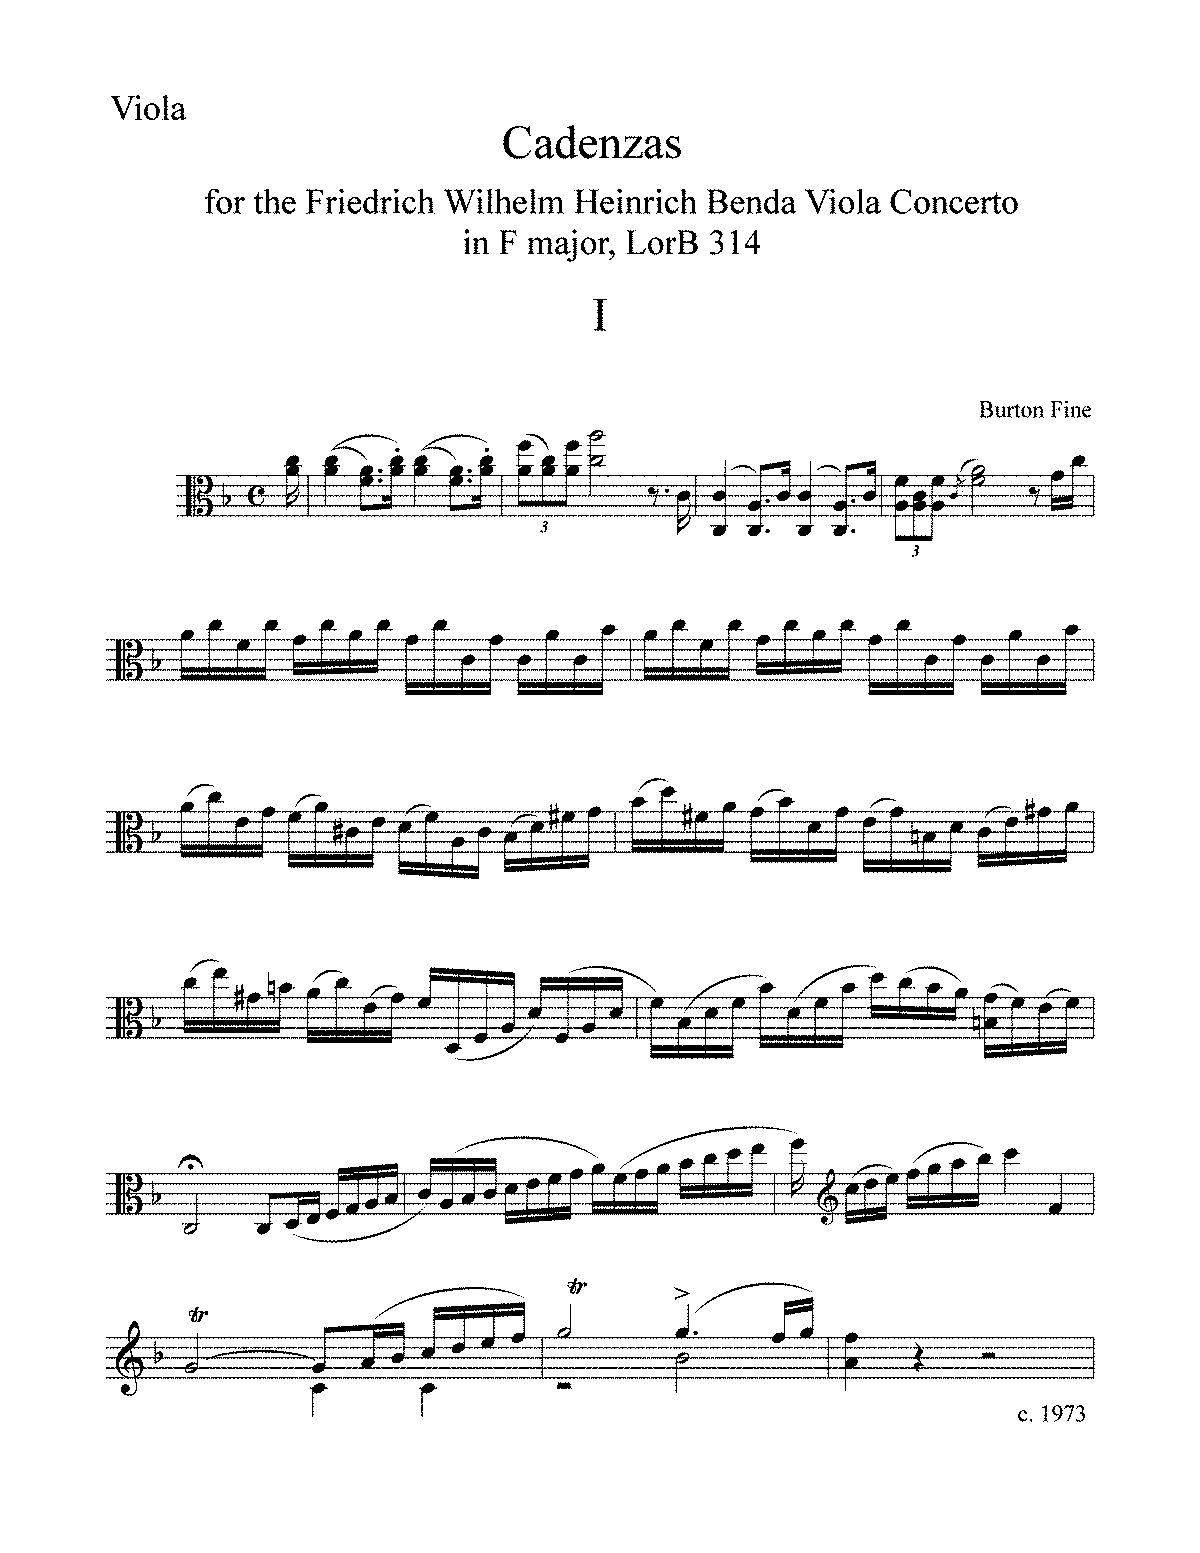 PMLP435161-Benda F Major Concerto Cadenzas.pdf